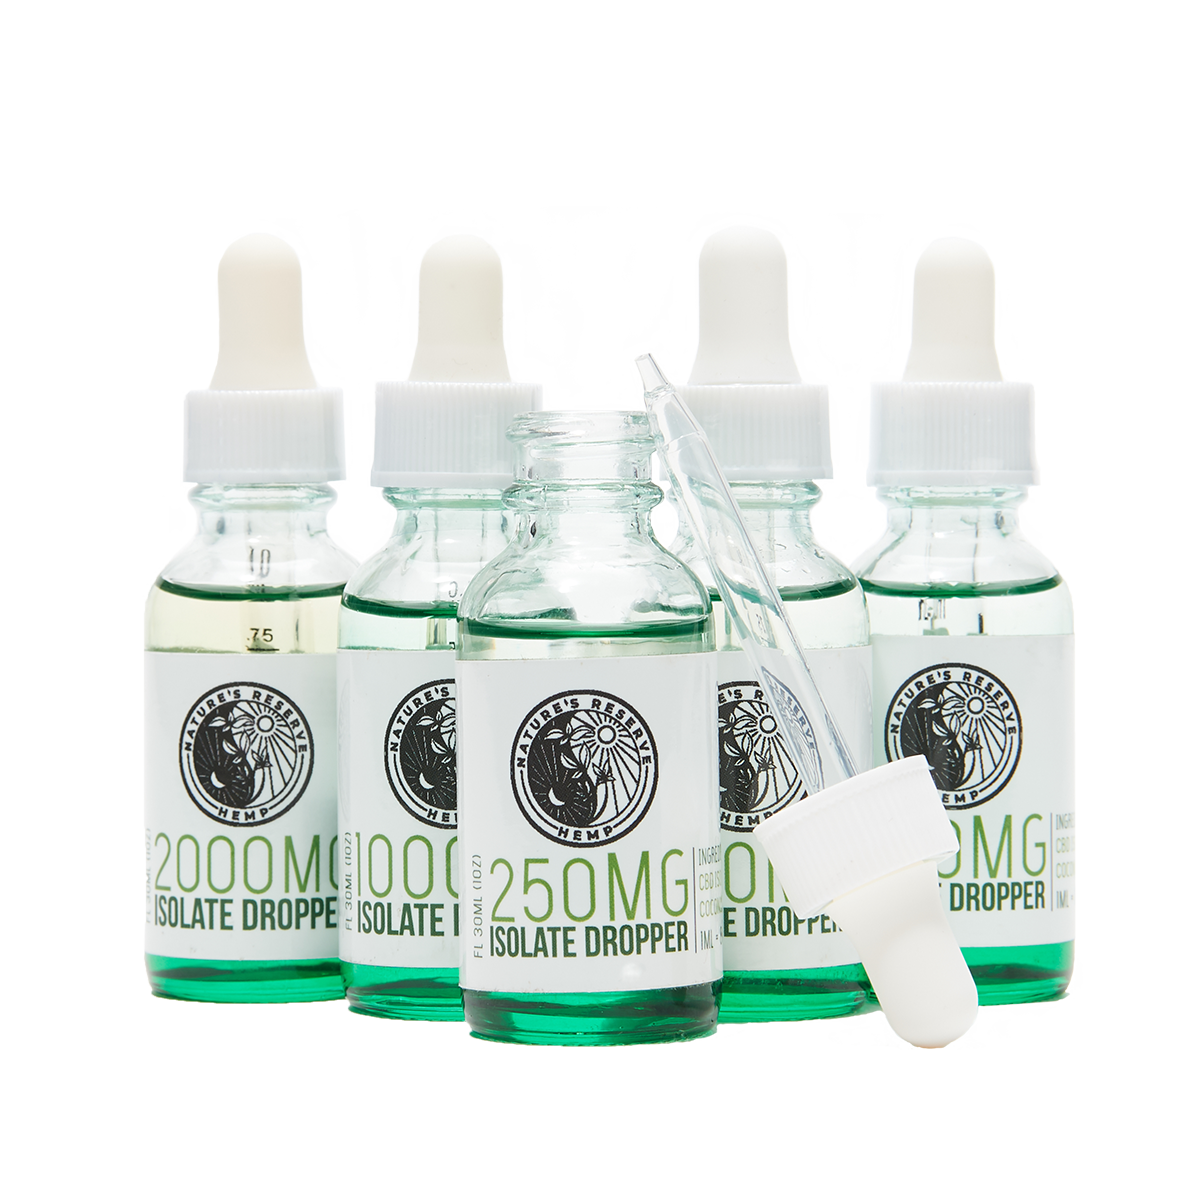 250 MG CBD Isolate Tincture Oil Droppers - Terpene Infused